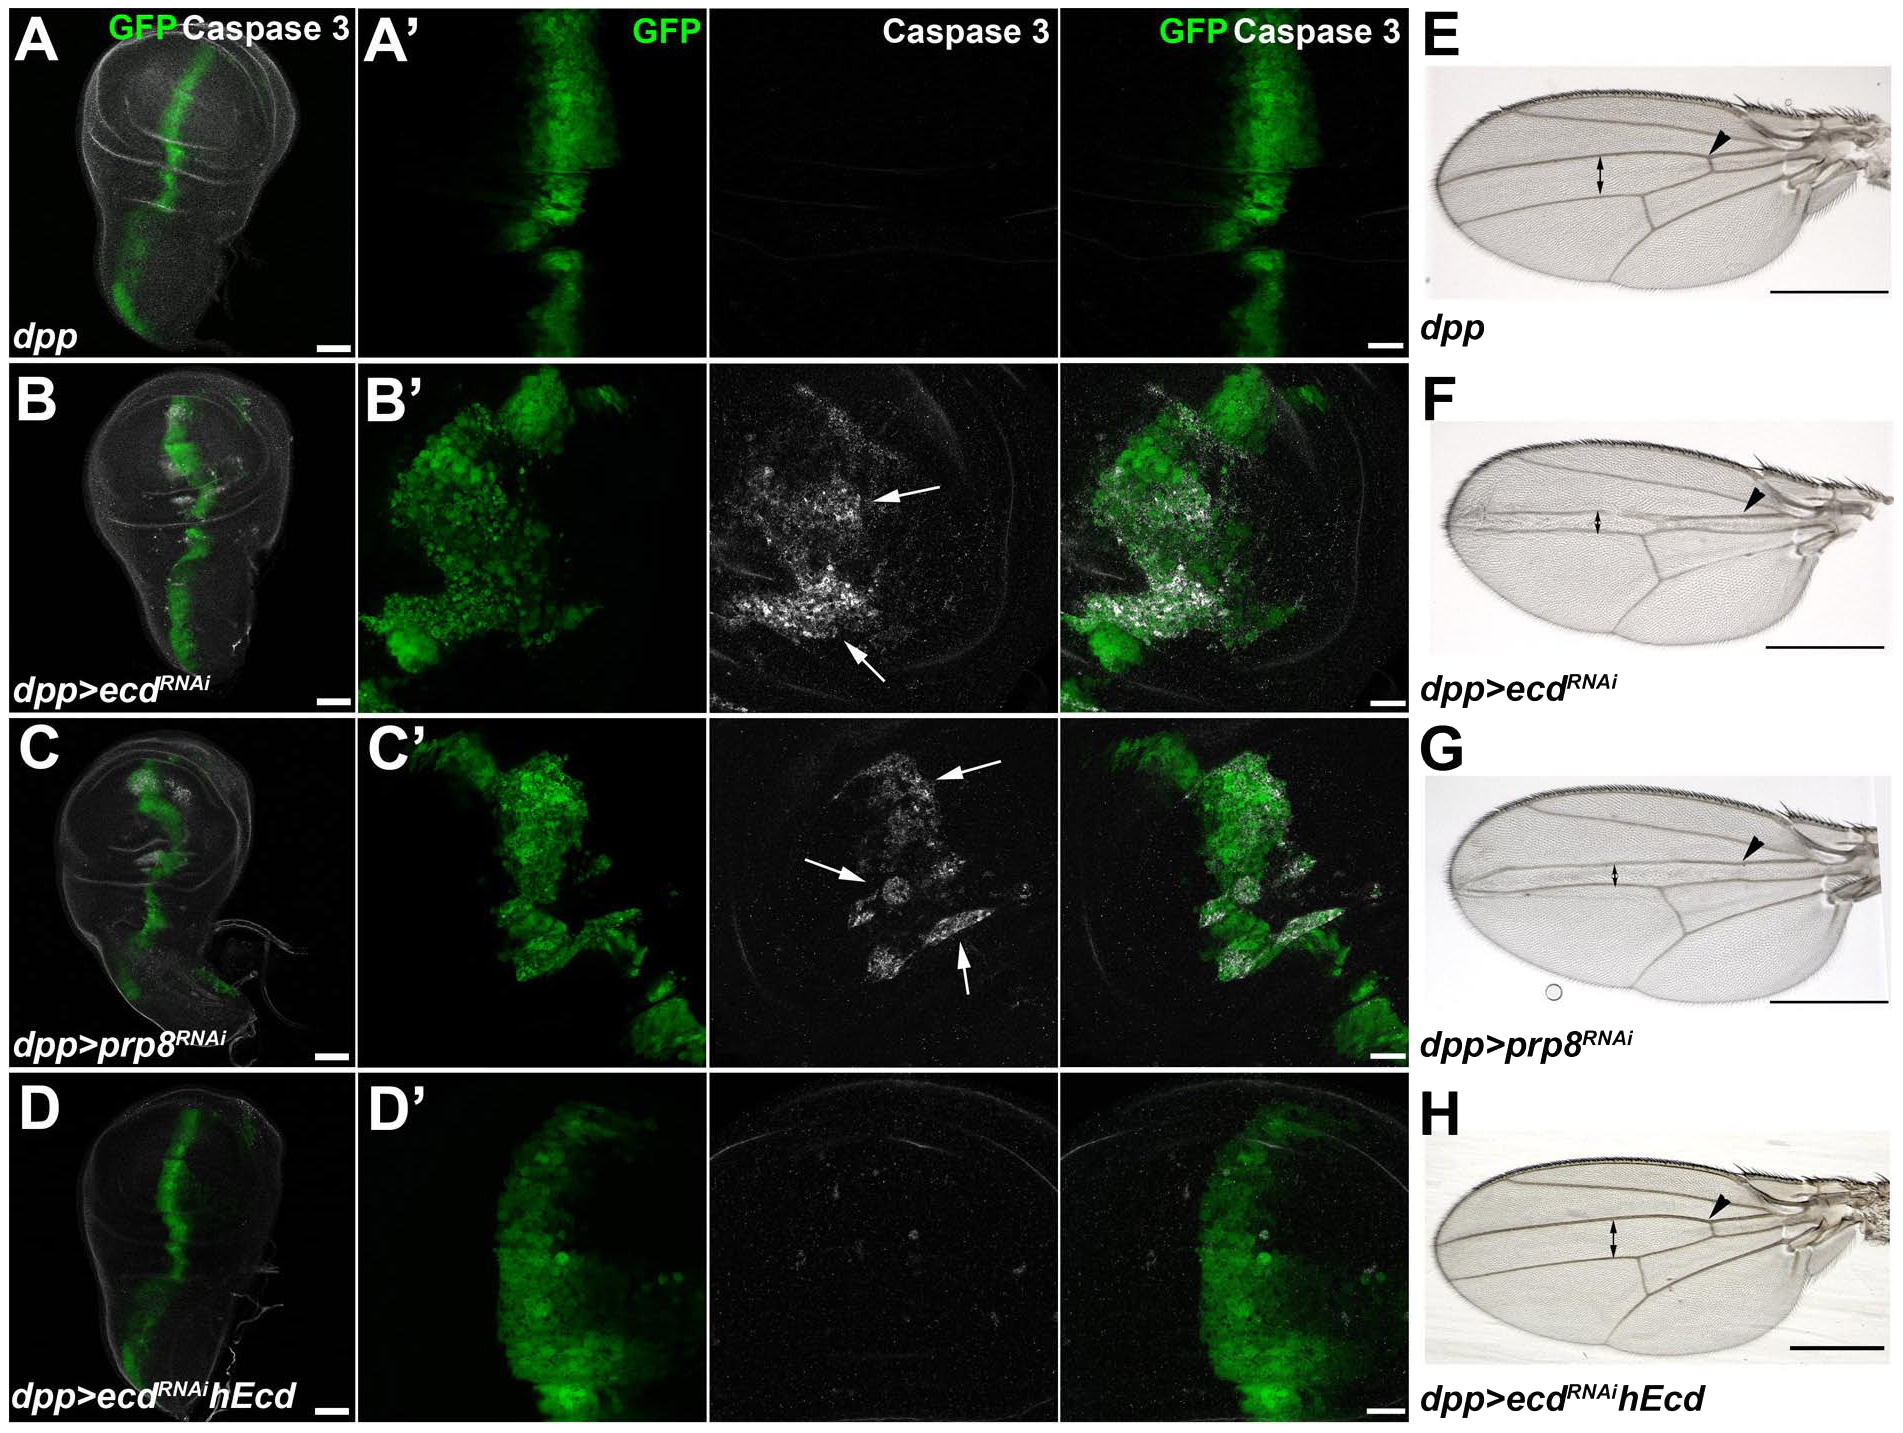 Depletion of Ecd or Prp8 causes apoptotic phenotypes in developing wings.